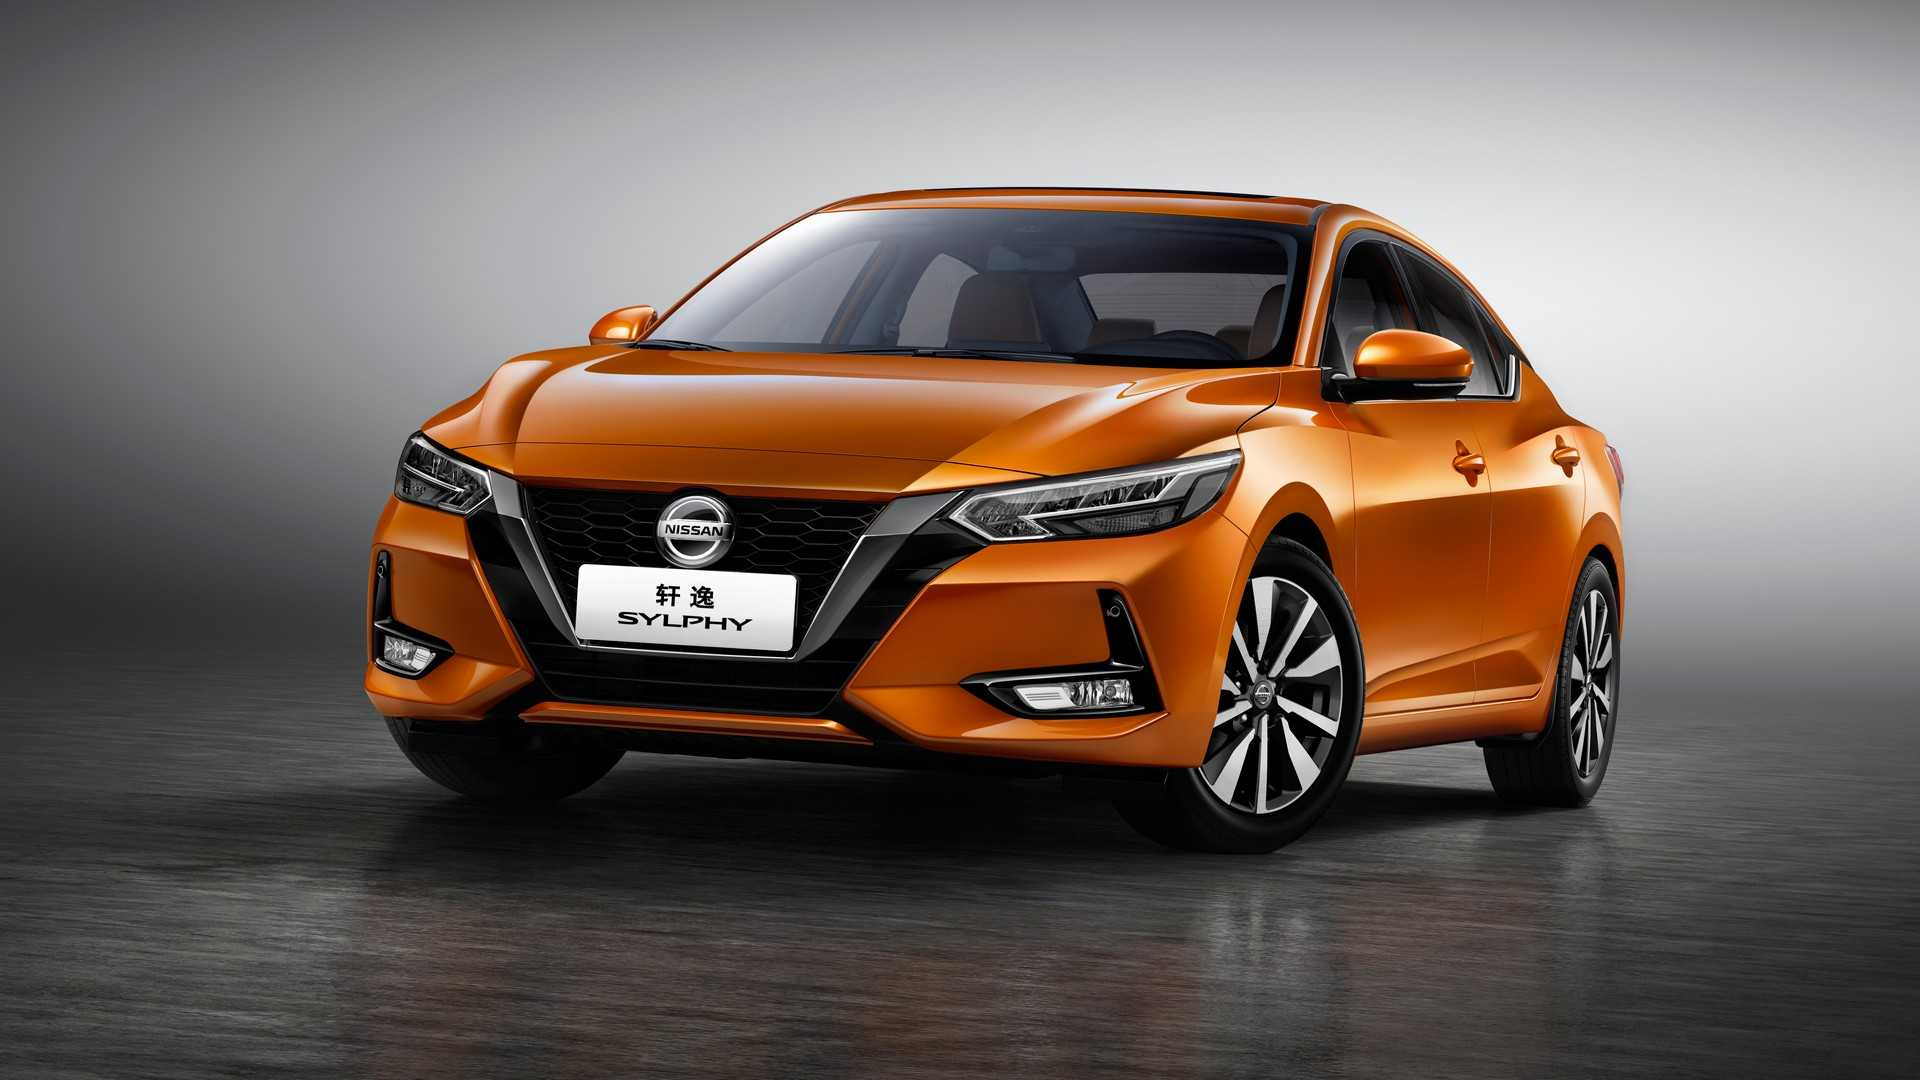 Nissan Sentra 2020 Review.2020 Nissan Sentra To Be Revealed On November 19